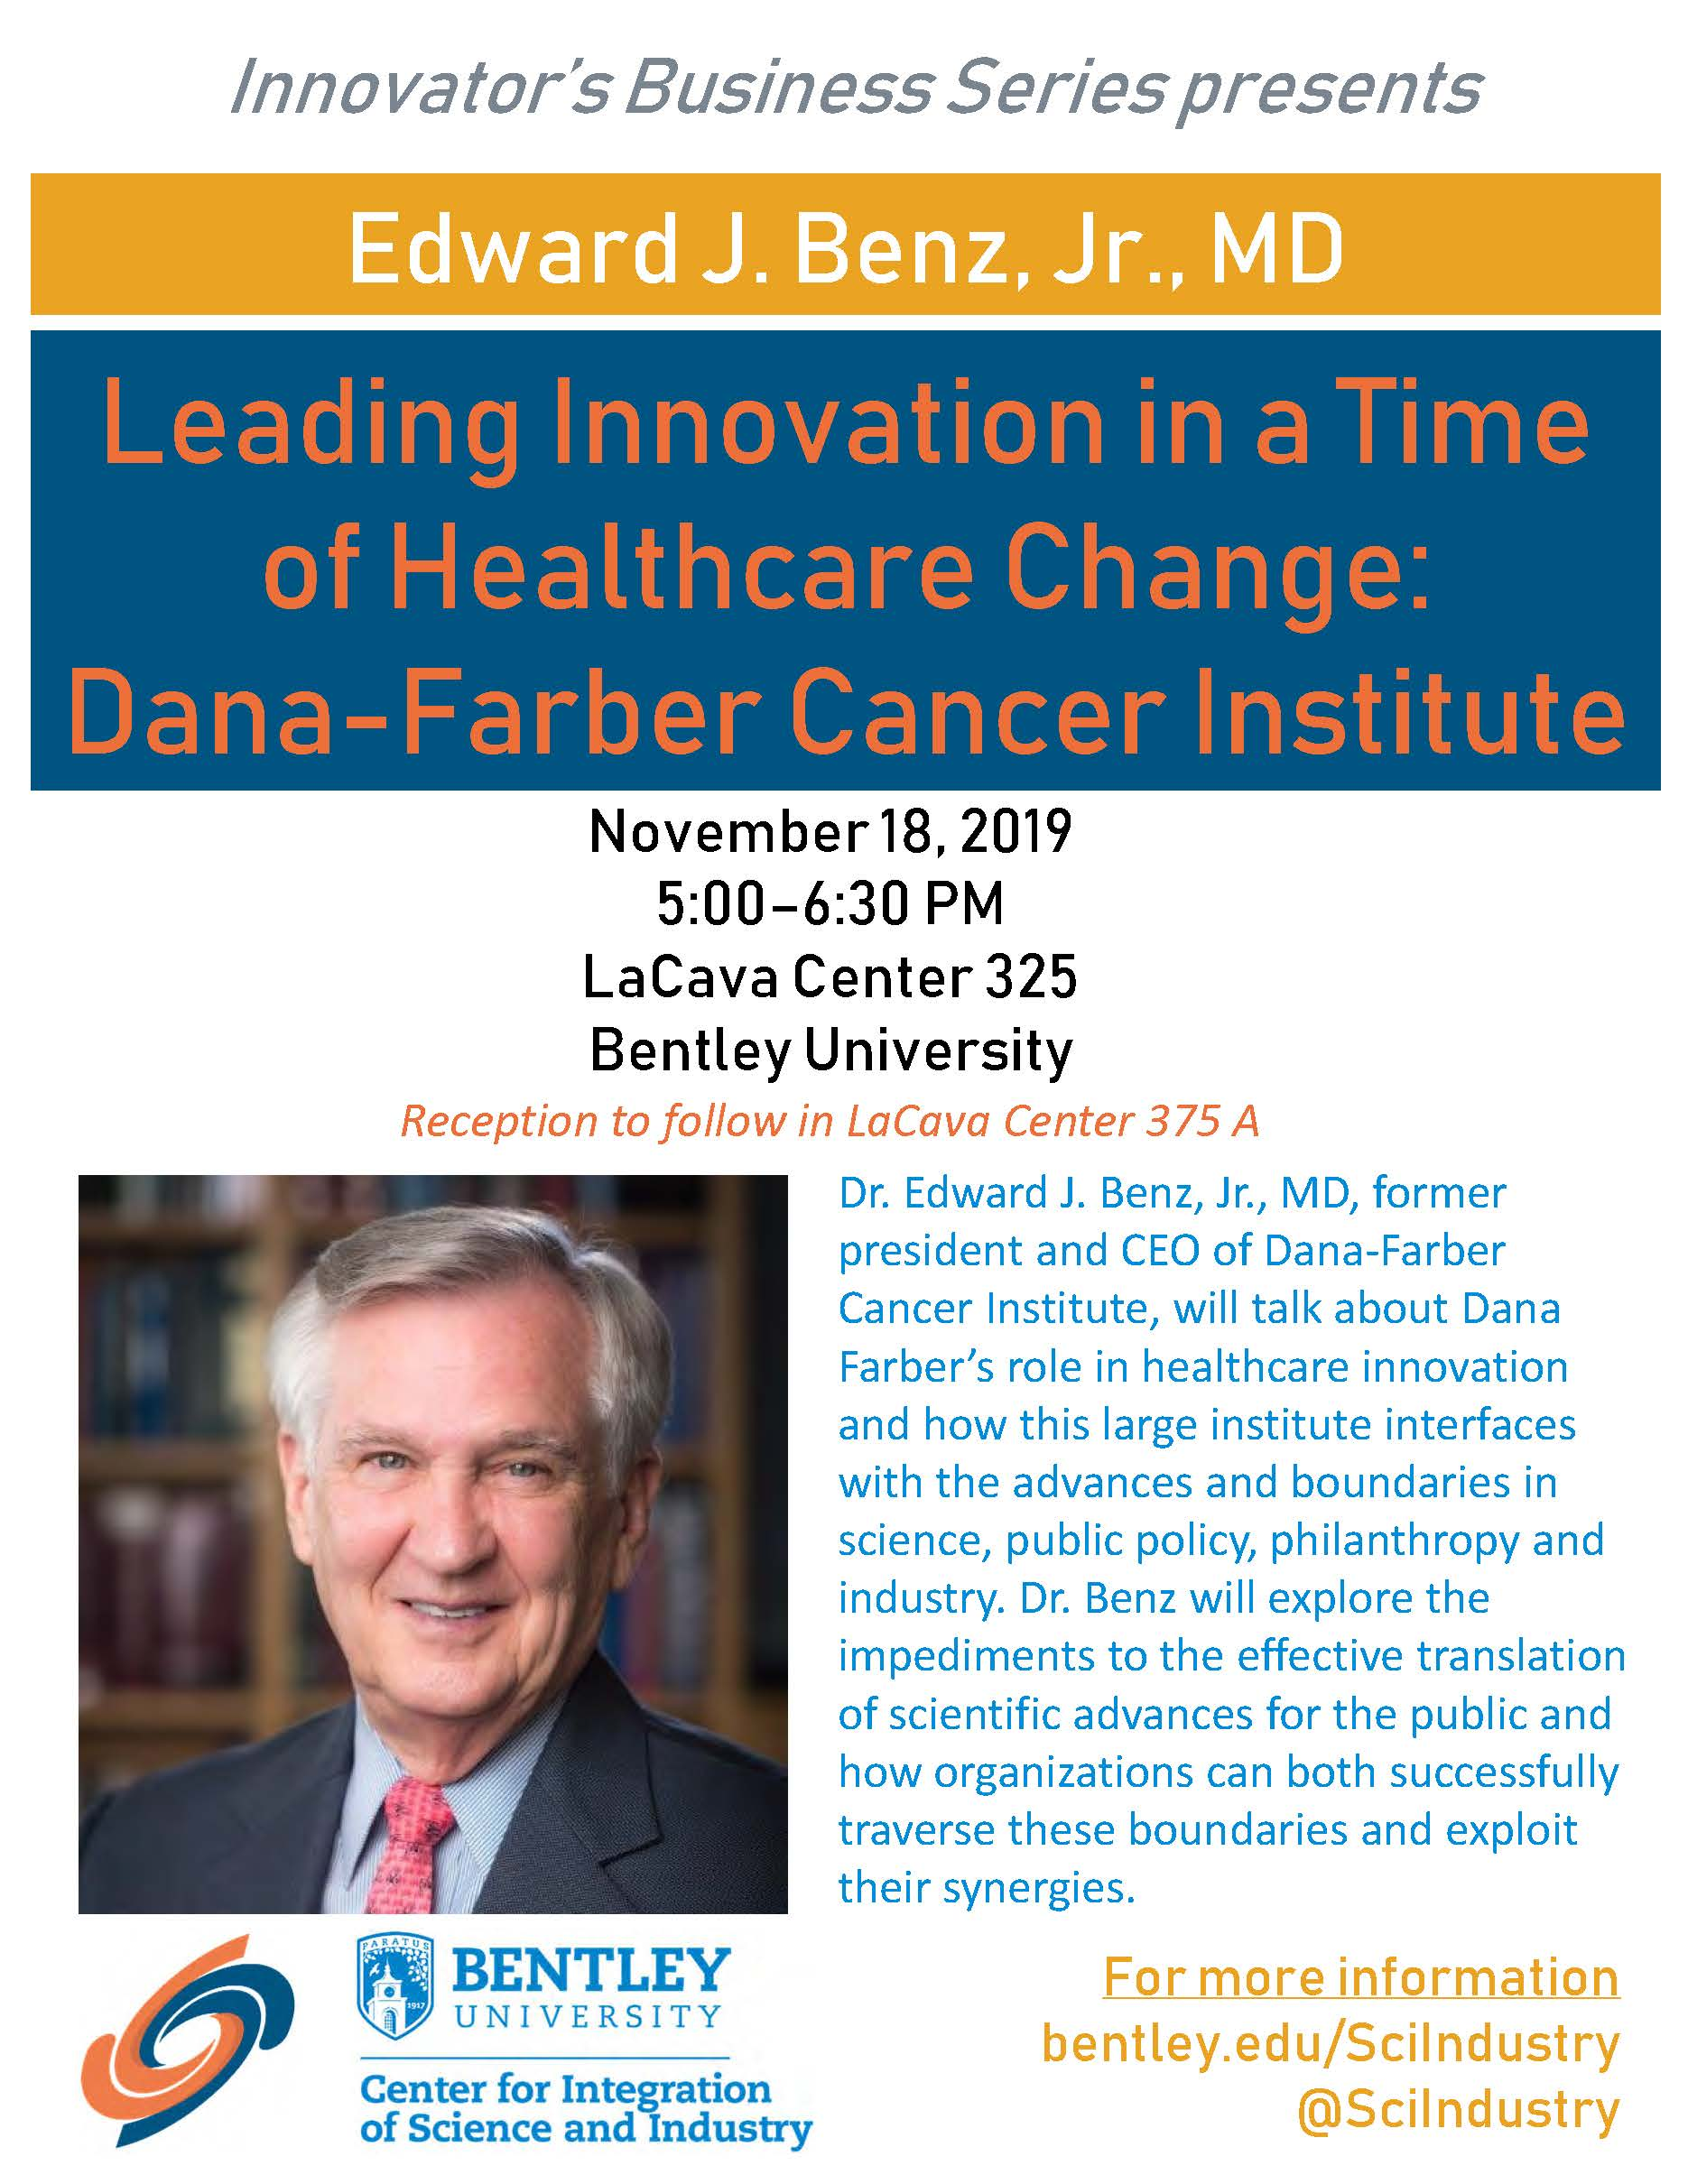 Leading Innovation in a Time of Healthcare Change: Dana-Farber Cancer Institute event poster